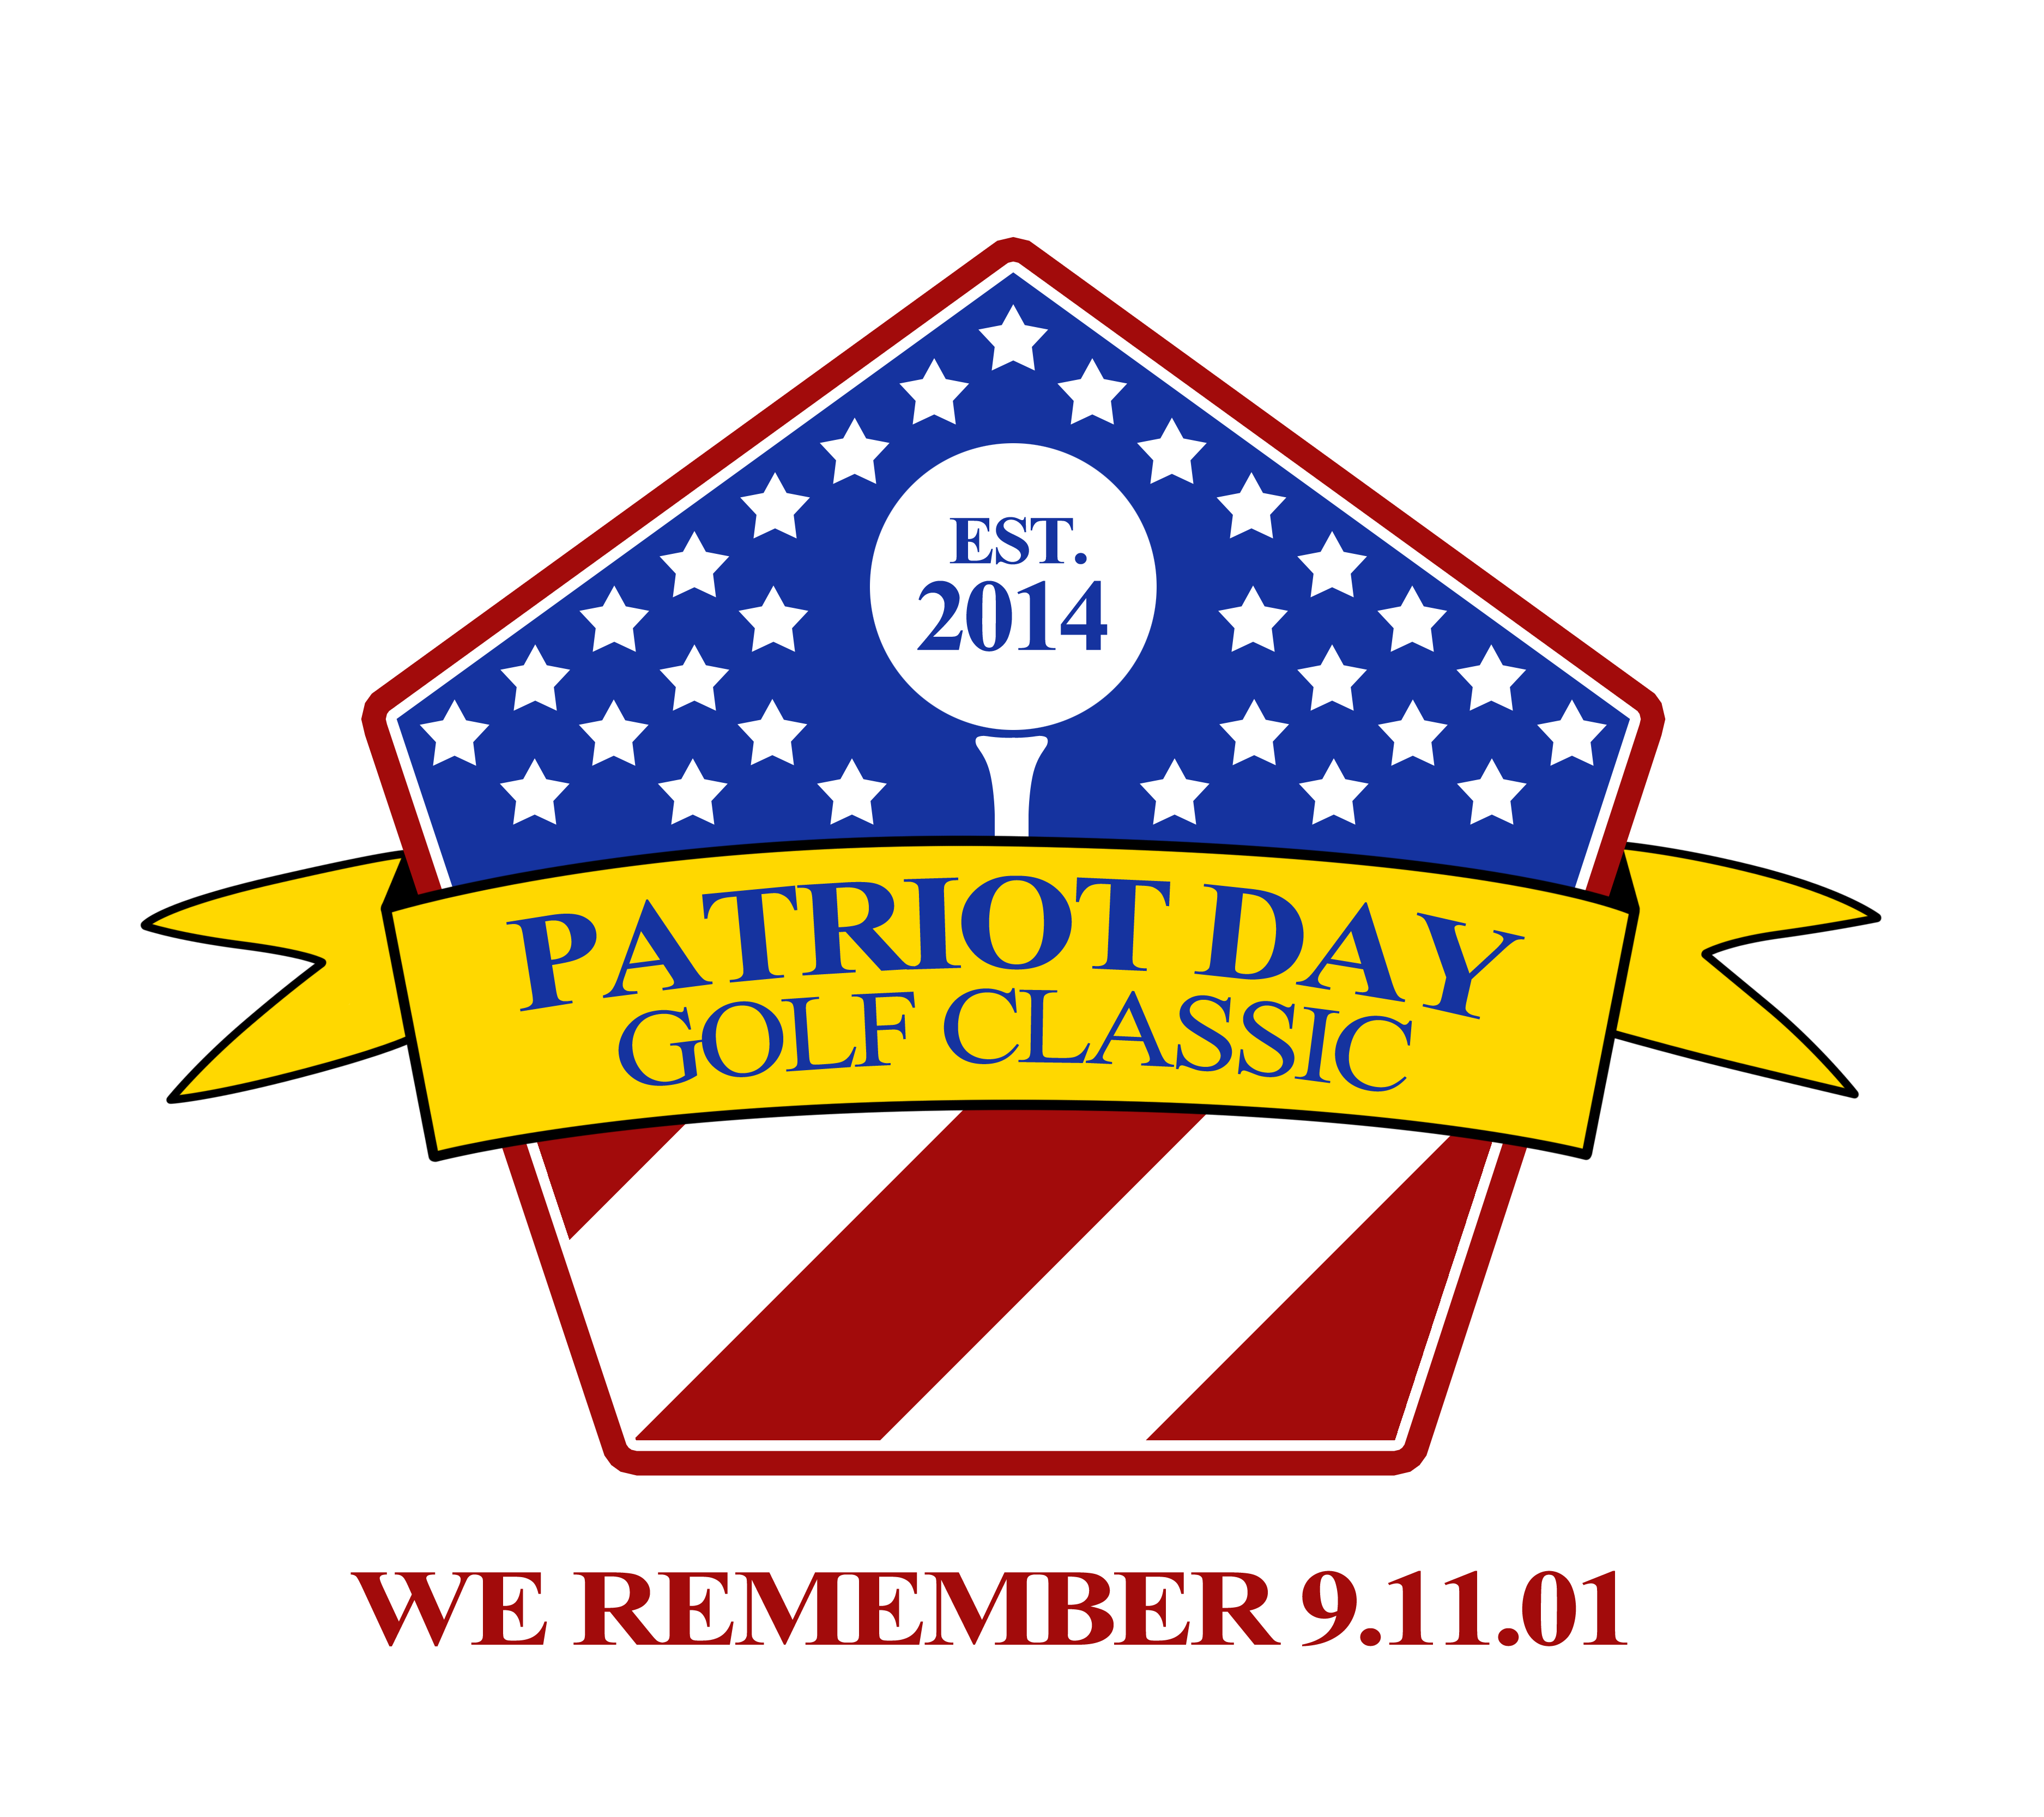 Patriot Day Golf Classic - Belle Haven Country Club